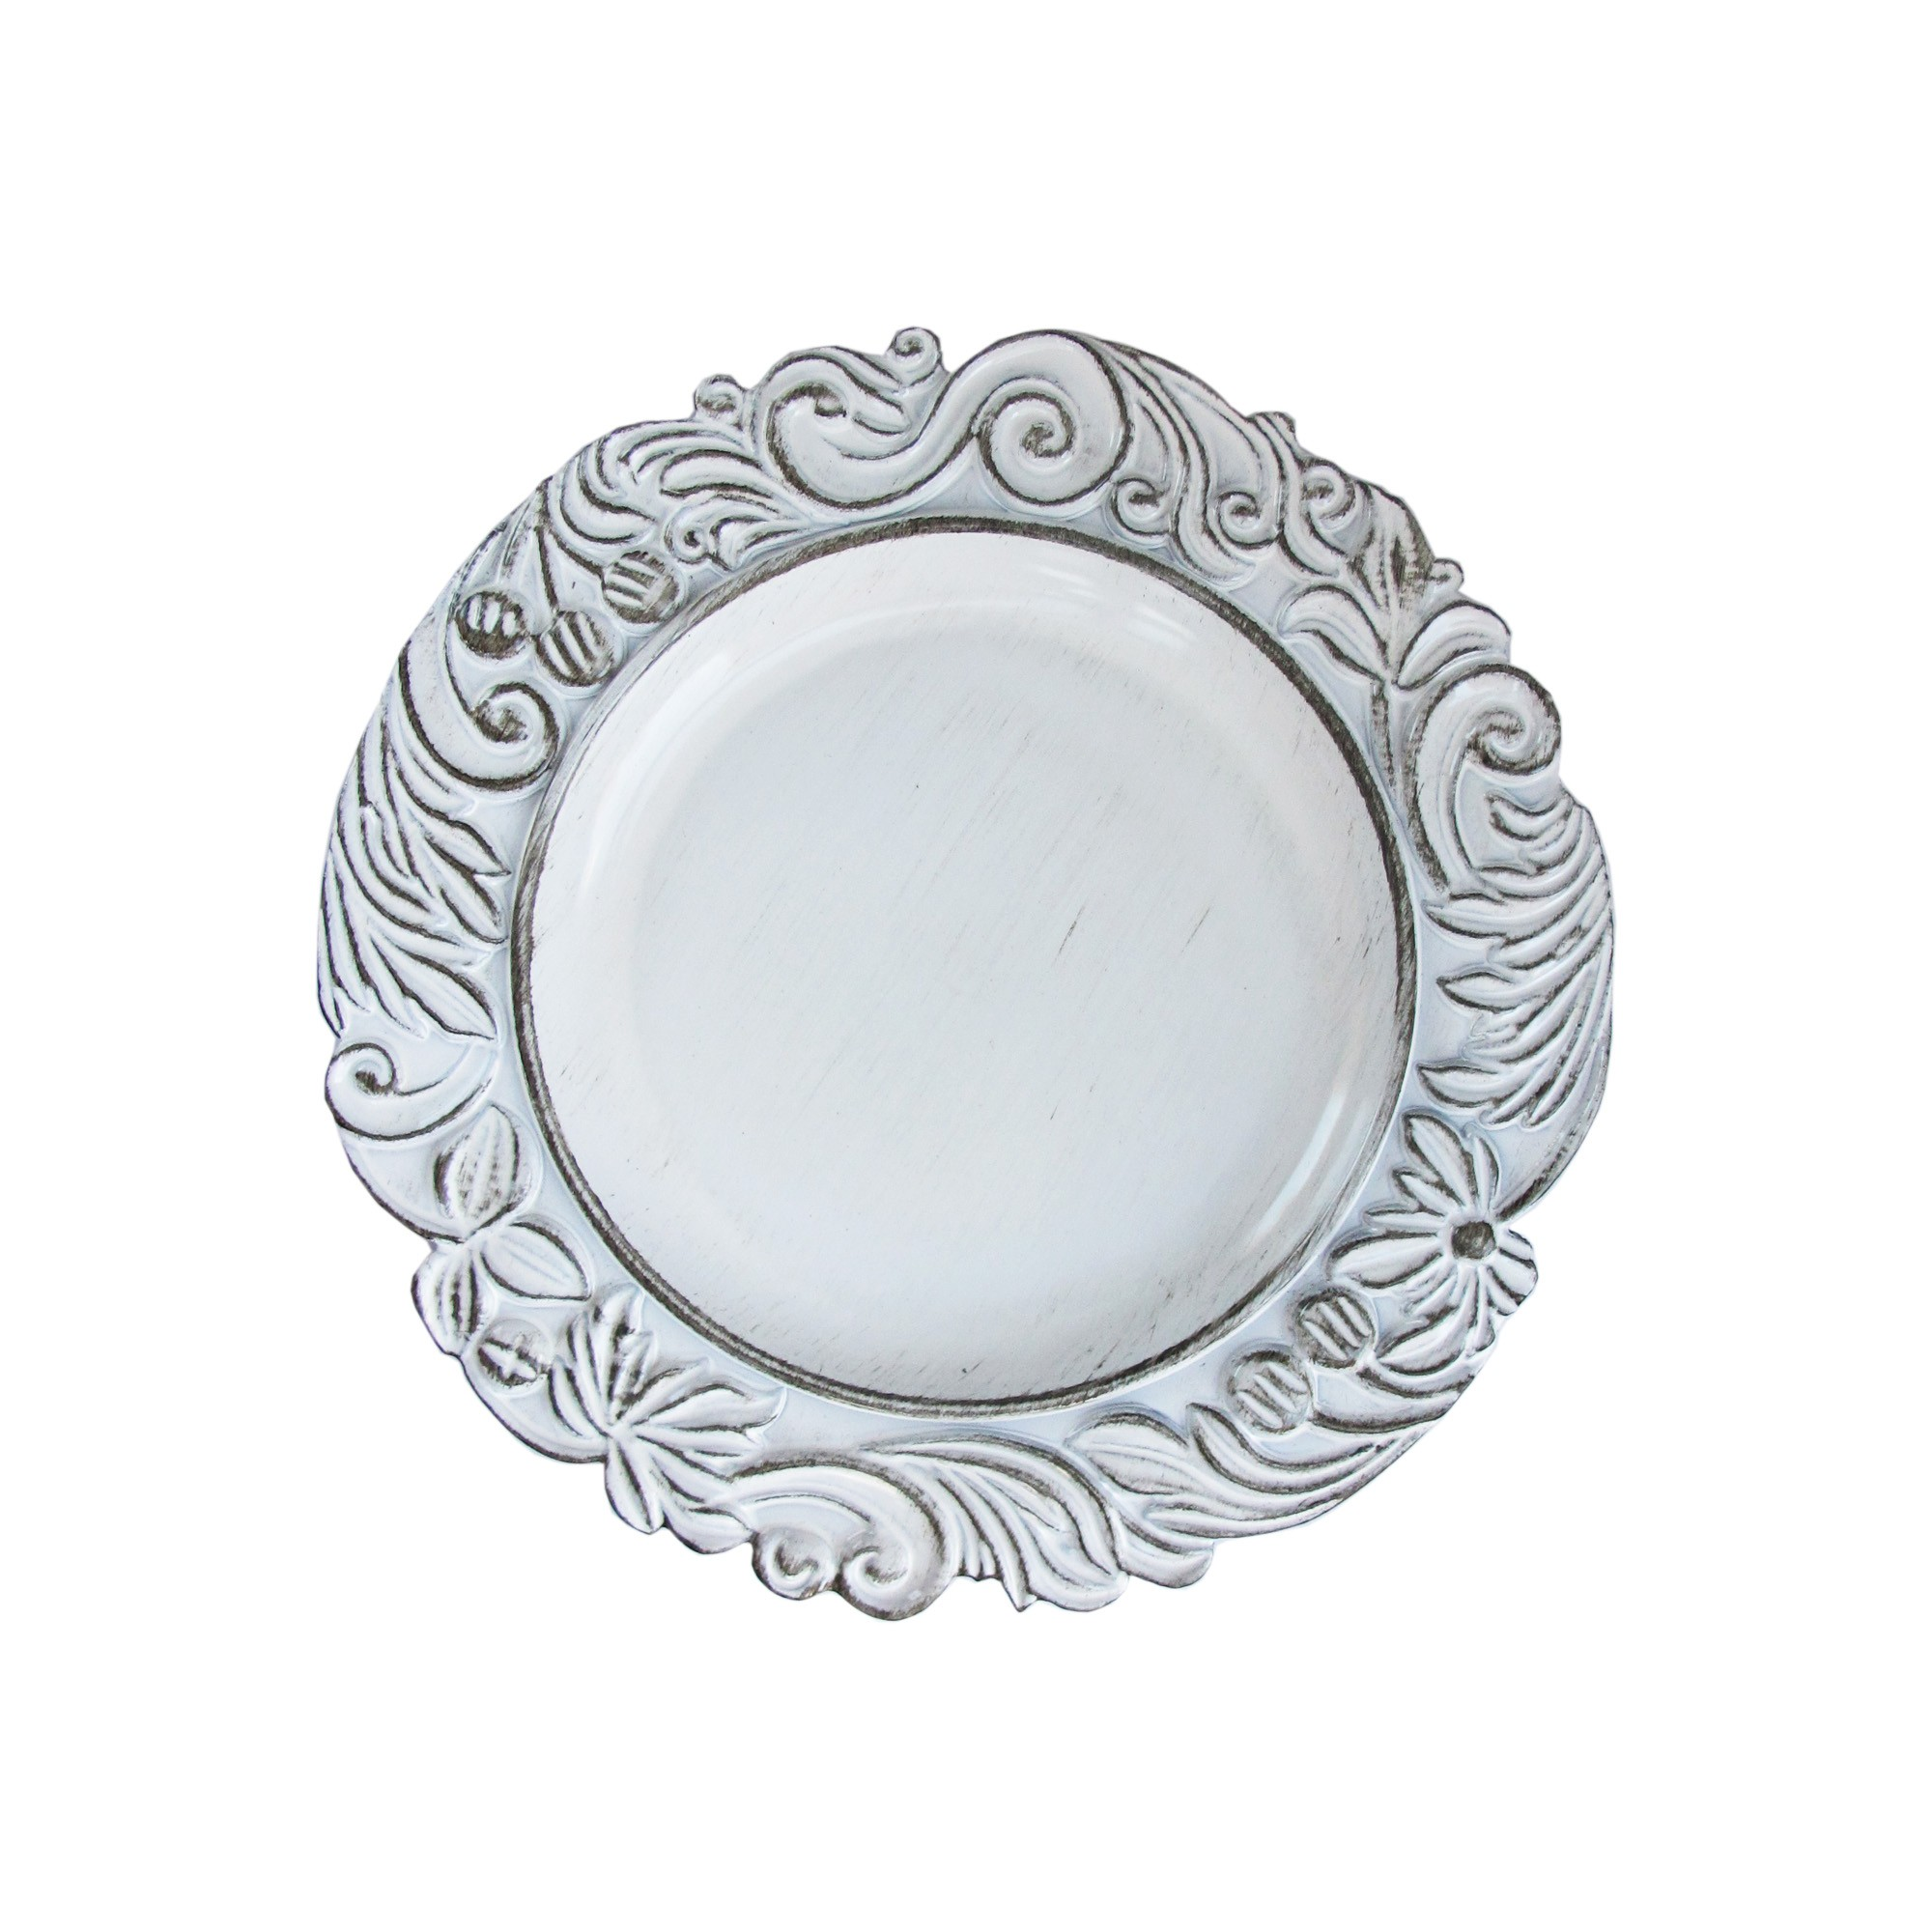 "Jay Companies 1270283 Aristocrat White Antique 14"" Charger Plate"